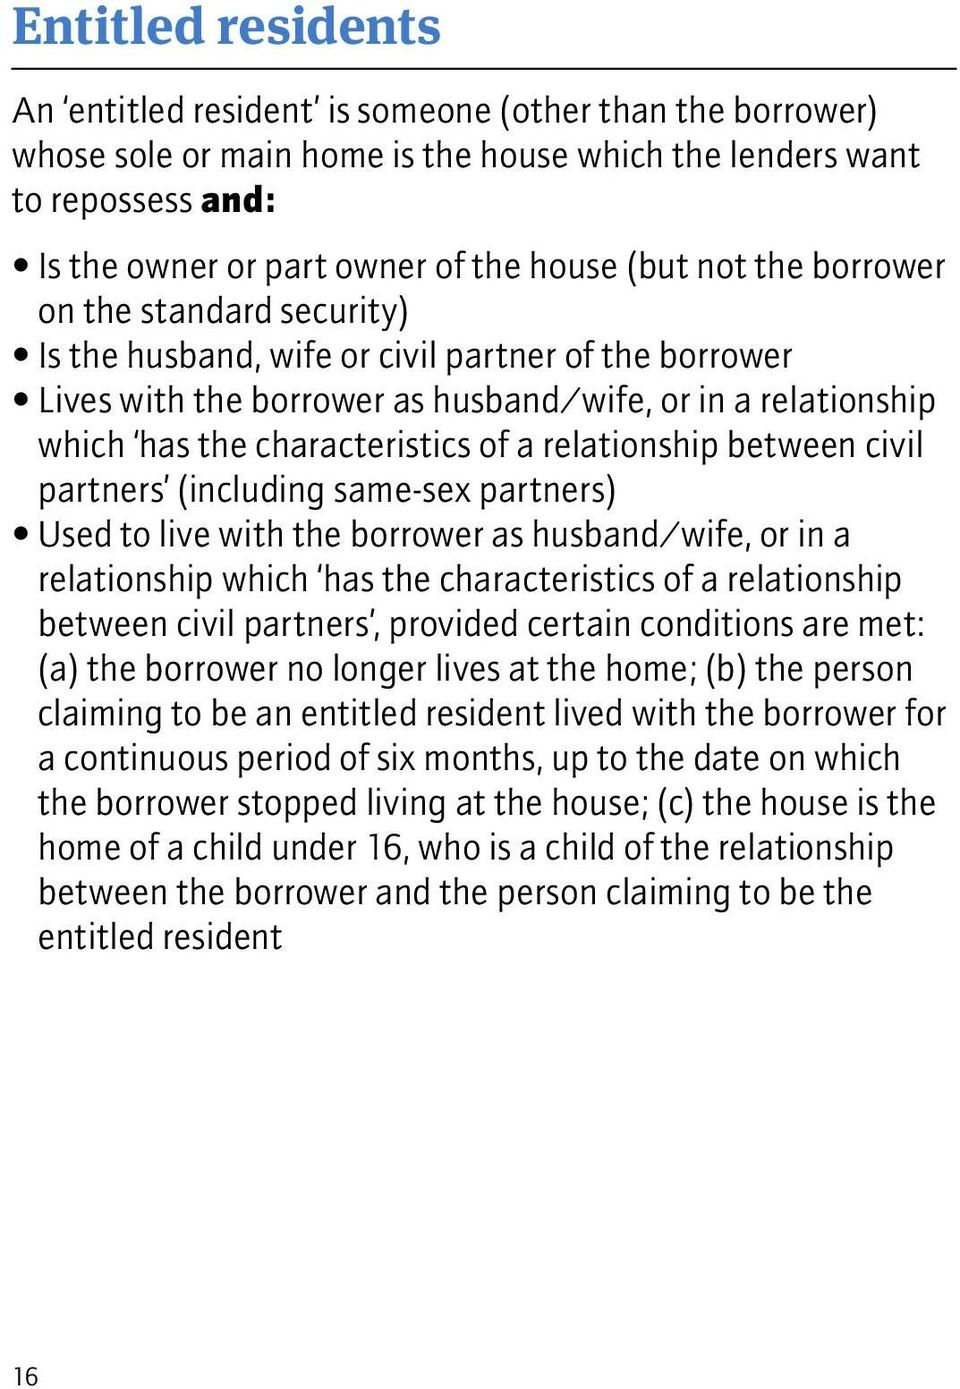 relationship between civil partners (including same-sex partners) Used to live with the borrower as husband/wife, or in a relationship which has the characteristics of a relationship between civil